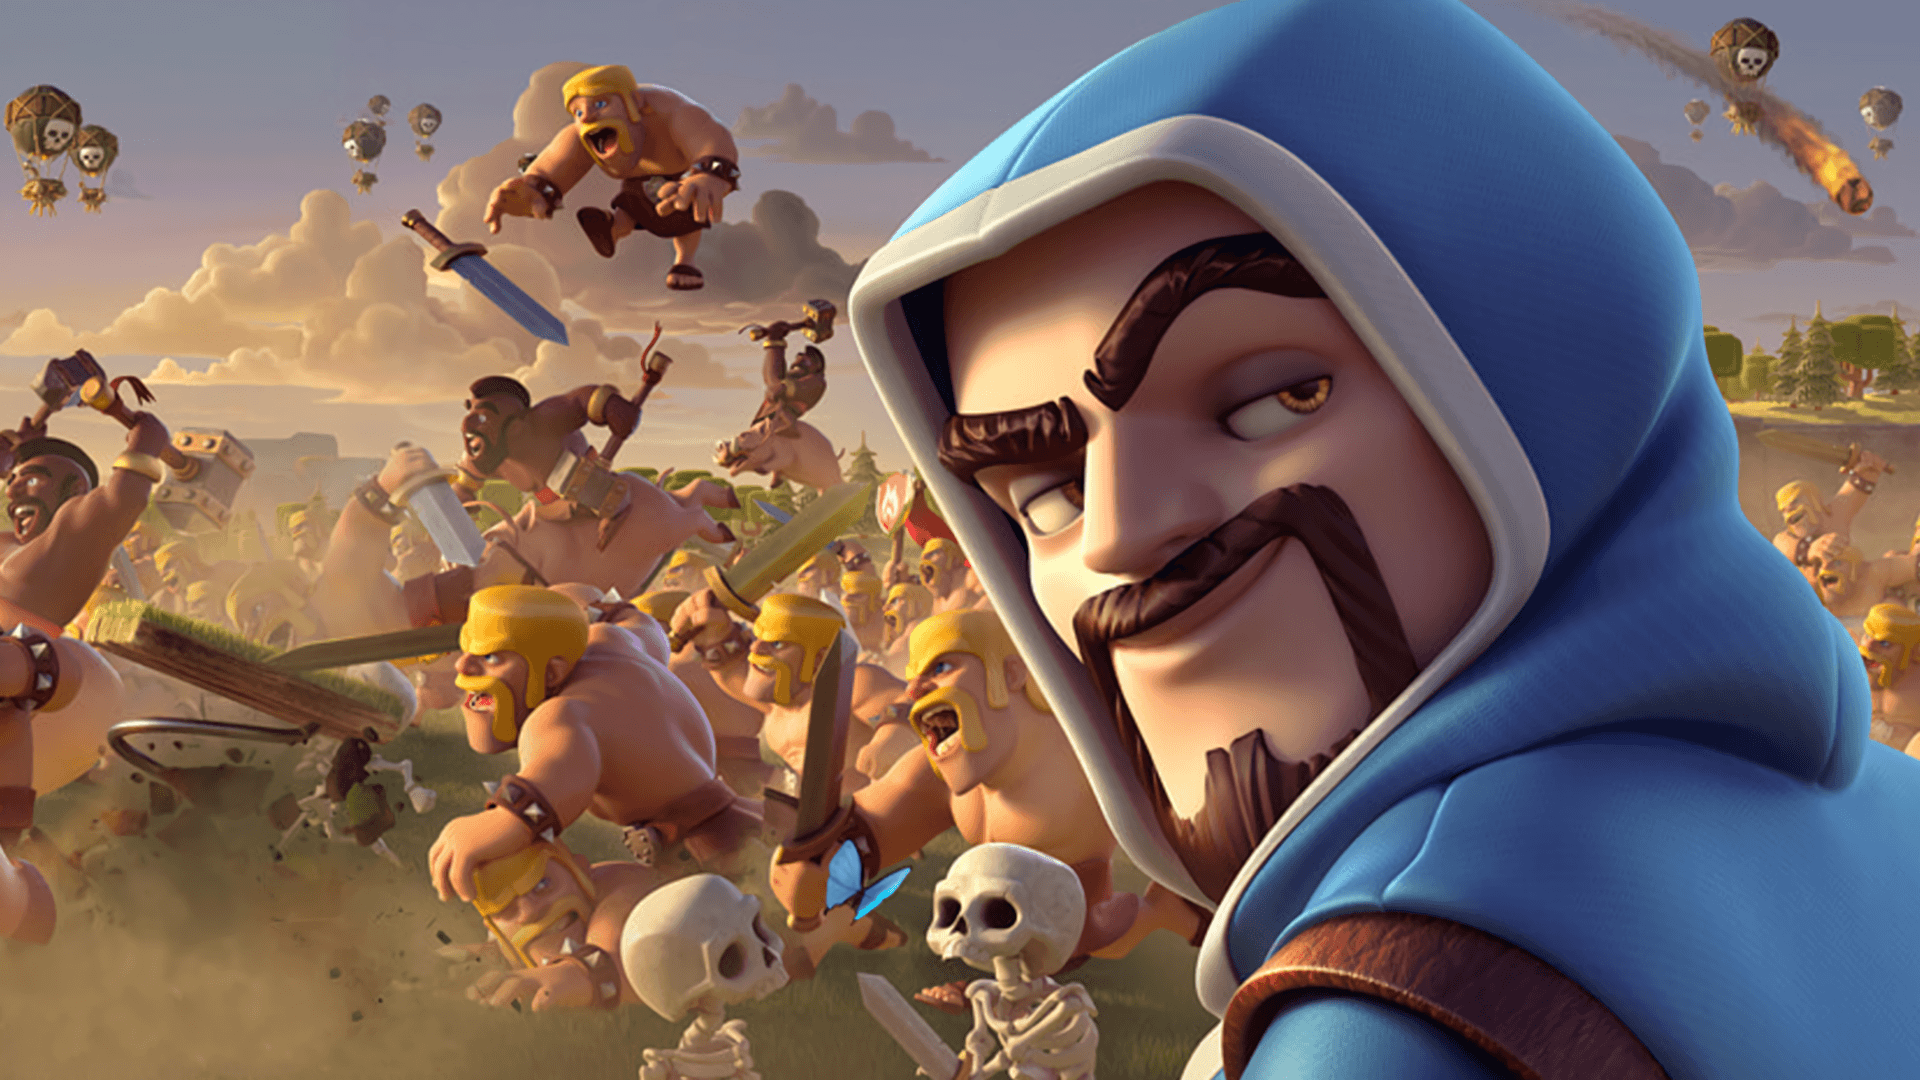 Clash Of Clans Wallpapers, Pictures, Image